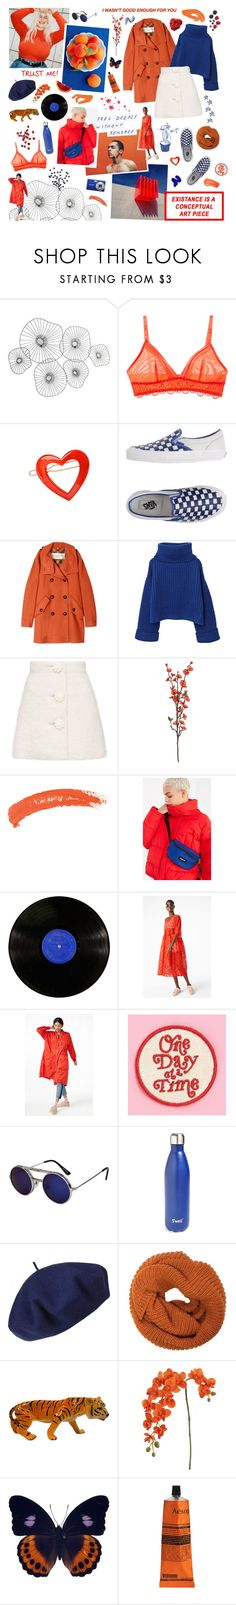 """""""A PUBLIC MELTDOWN"""" by quiffhead ❤ liked on Polyvore featuring Cyan Design, Underella by Ella Moss, France Luxe, Vans, Burberry, MANGO, Topshop, Eastpak, Monki and Spitfire"""